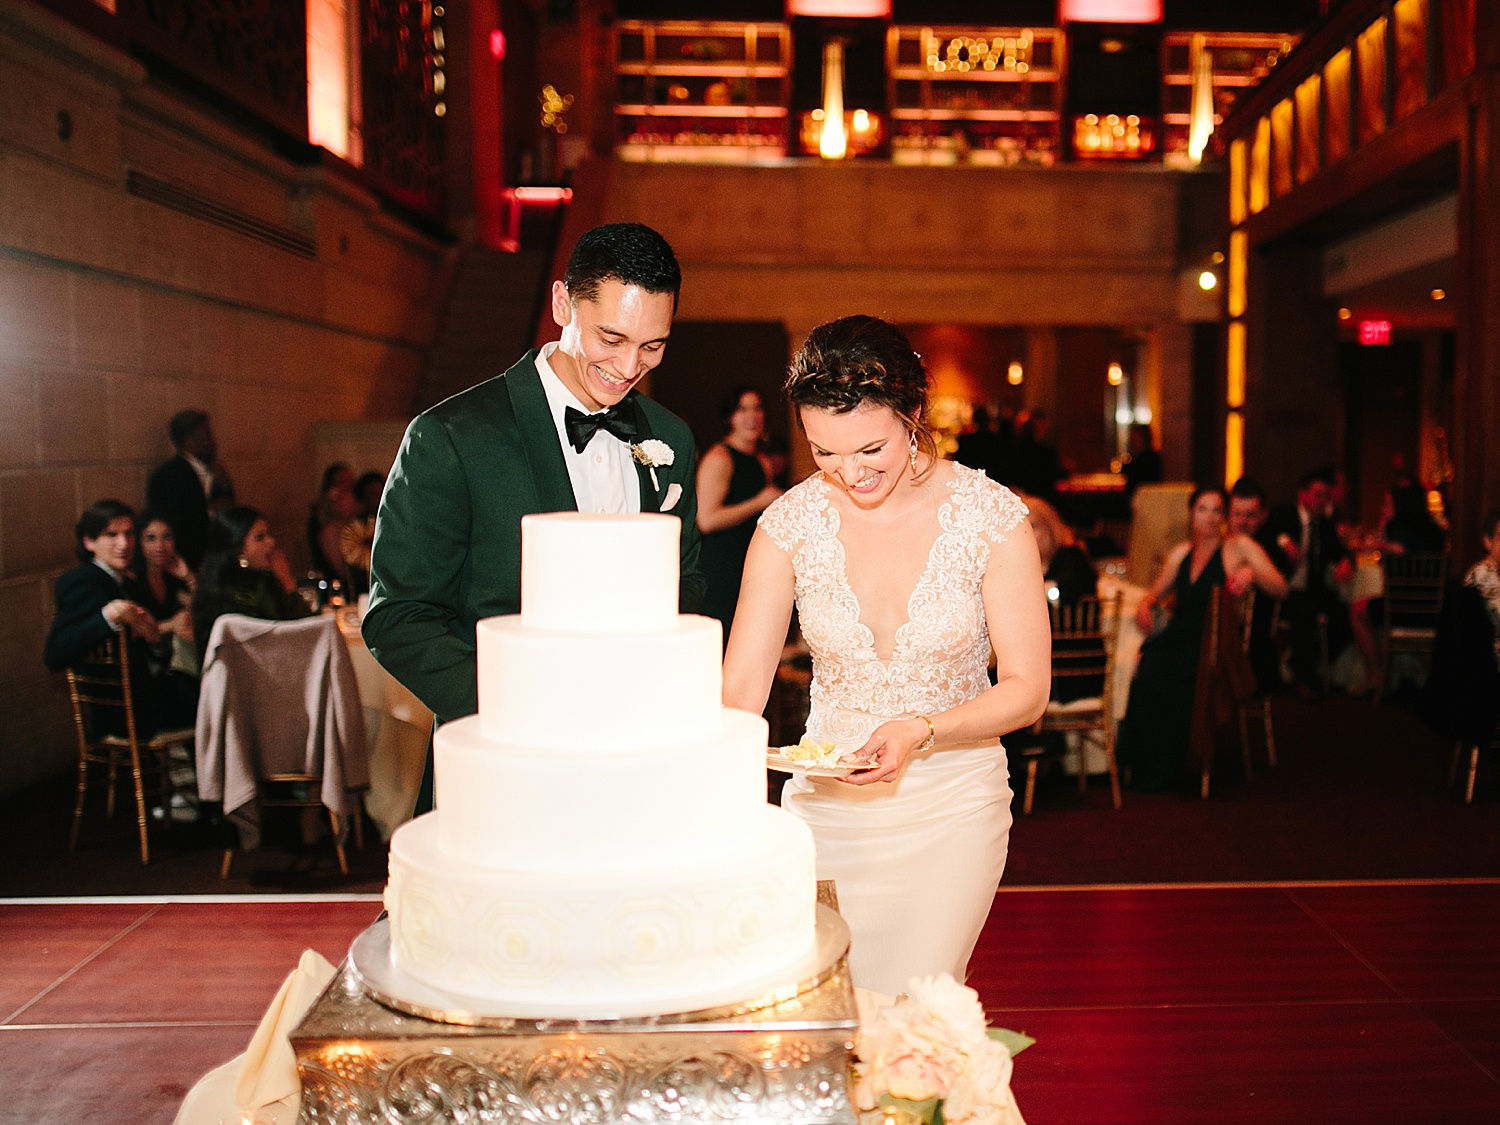 kirstentony_uniontrust_finleycatering_christchurch_philadelphia_wedding_image_0747.jpg